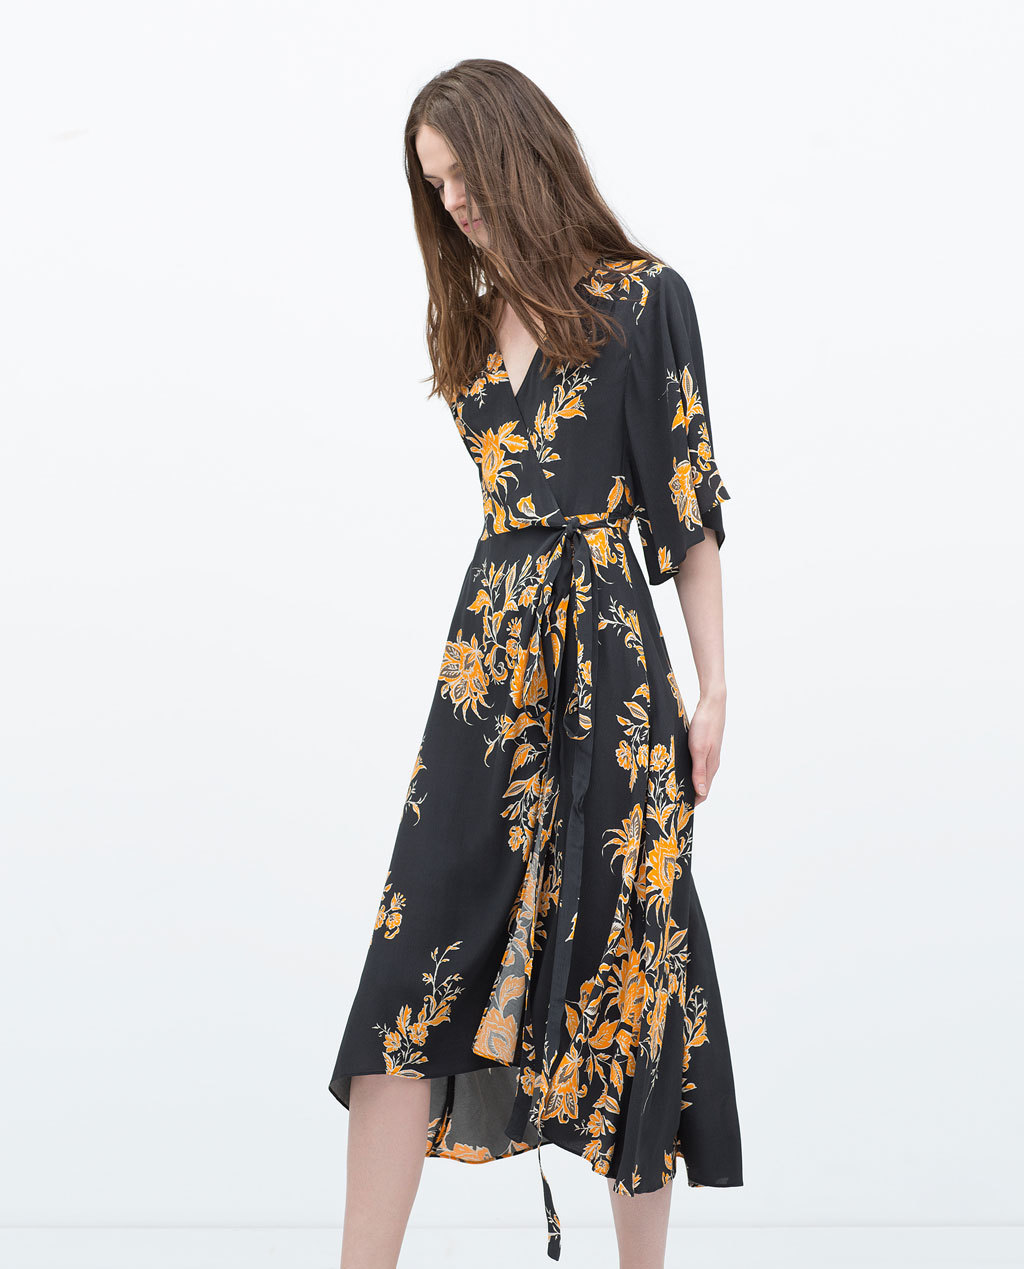 Printed Dress - style: faux wrap/wrap; length: below the knee; neckline: low v-neck; sleeve style: angel/waterfall; waist detail: belted waist/tie at waist/drawstring; secondary colour: bright orange; predominant colour: black; occasions: casual, occasion; fit: fitted at waist & bust; fibres: viscose/rayon - 100%; hip detail: subtle/flattering hip detail; sleeve length: 3/4 length; texture group: sheer fabrics/chiffon/organza etc.; pattern type: fabric; pattern size: standard; pattern: florals; season: s/s 2015; multicoloured: multicoloured; wardrobe: highlight